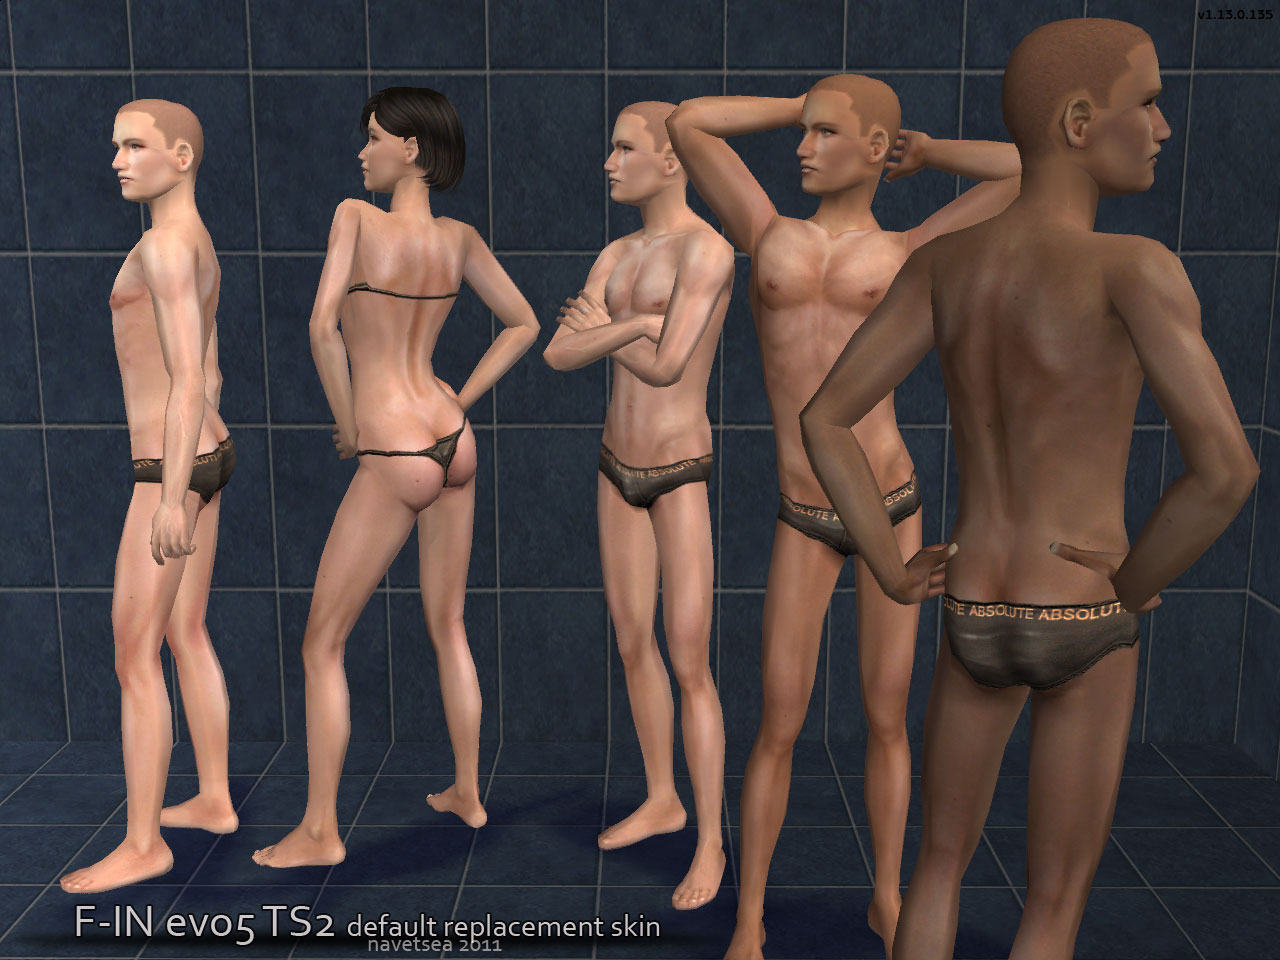 Female nudes sims 4 porncraft photo